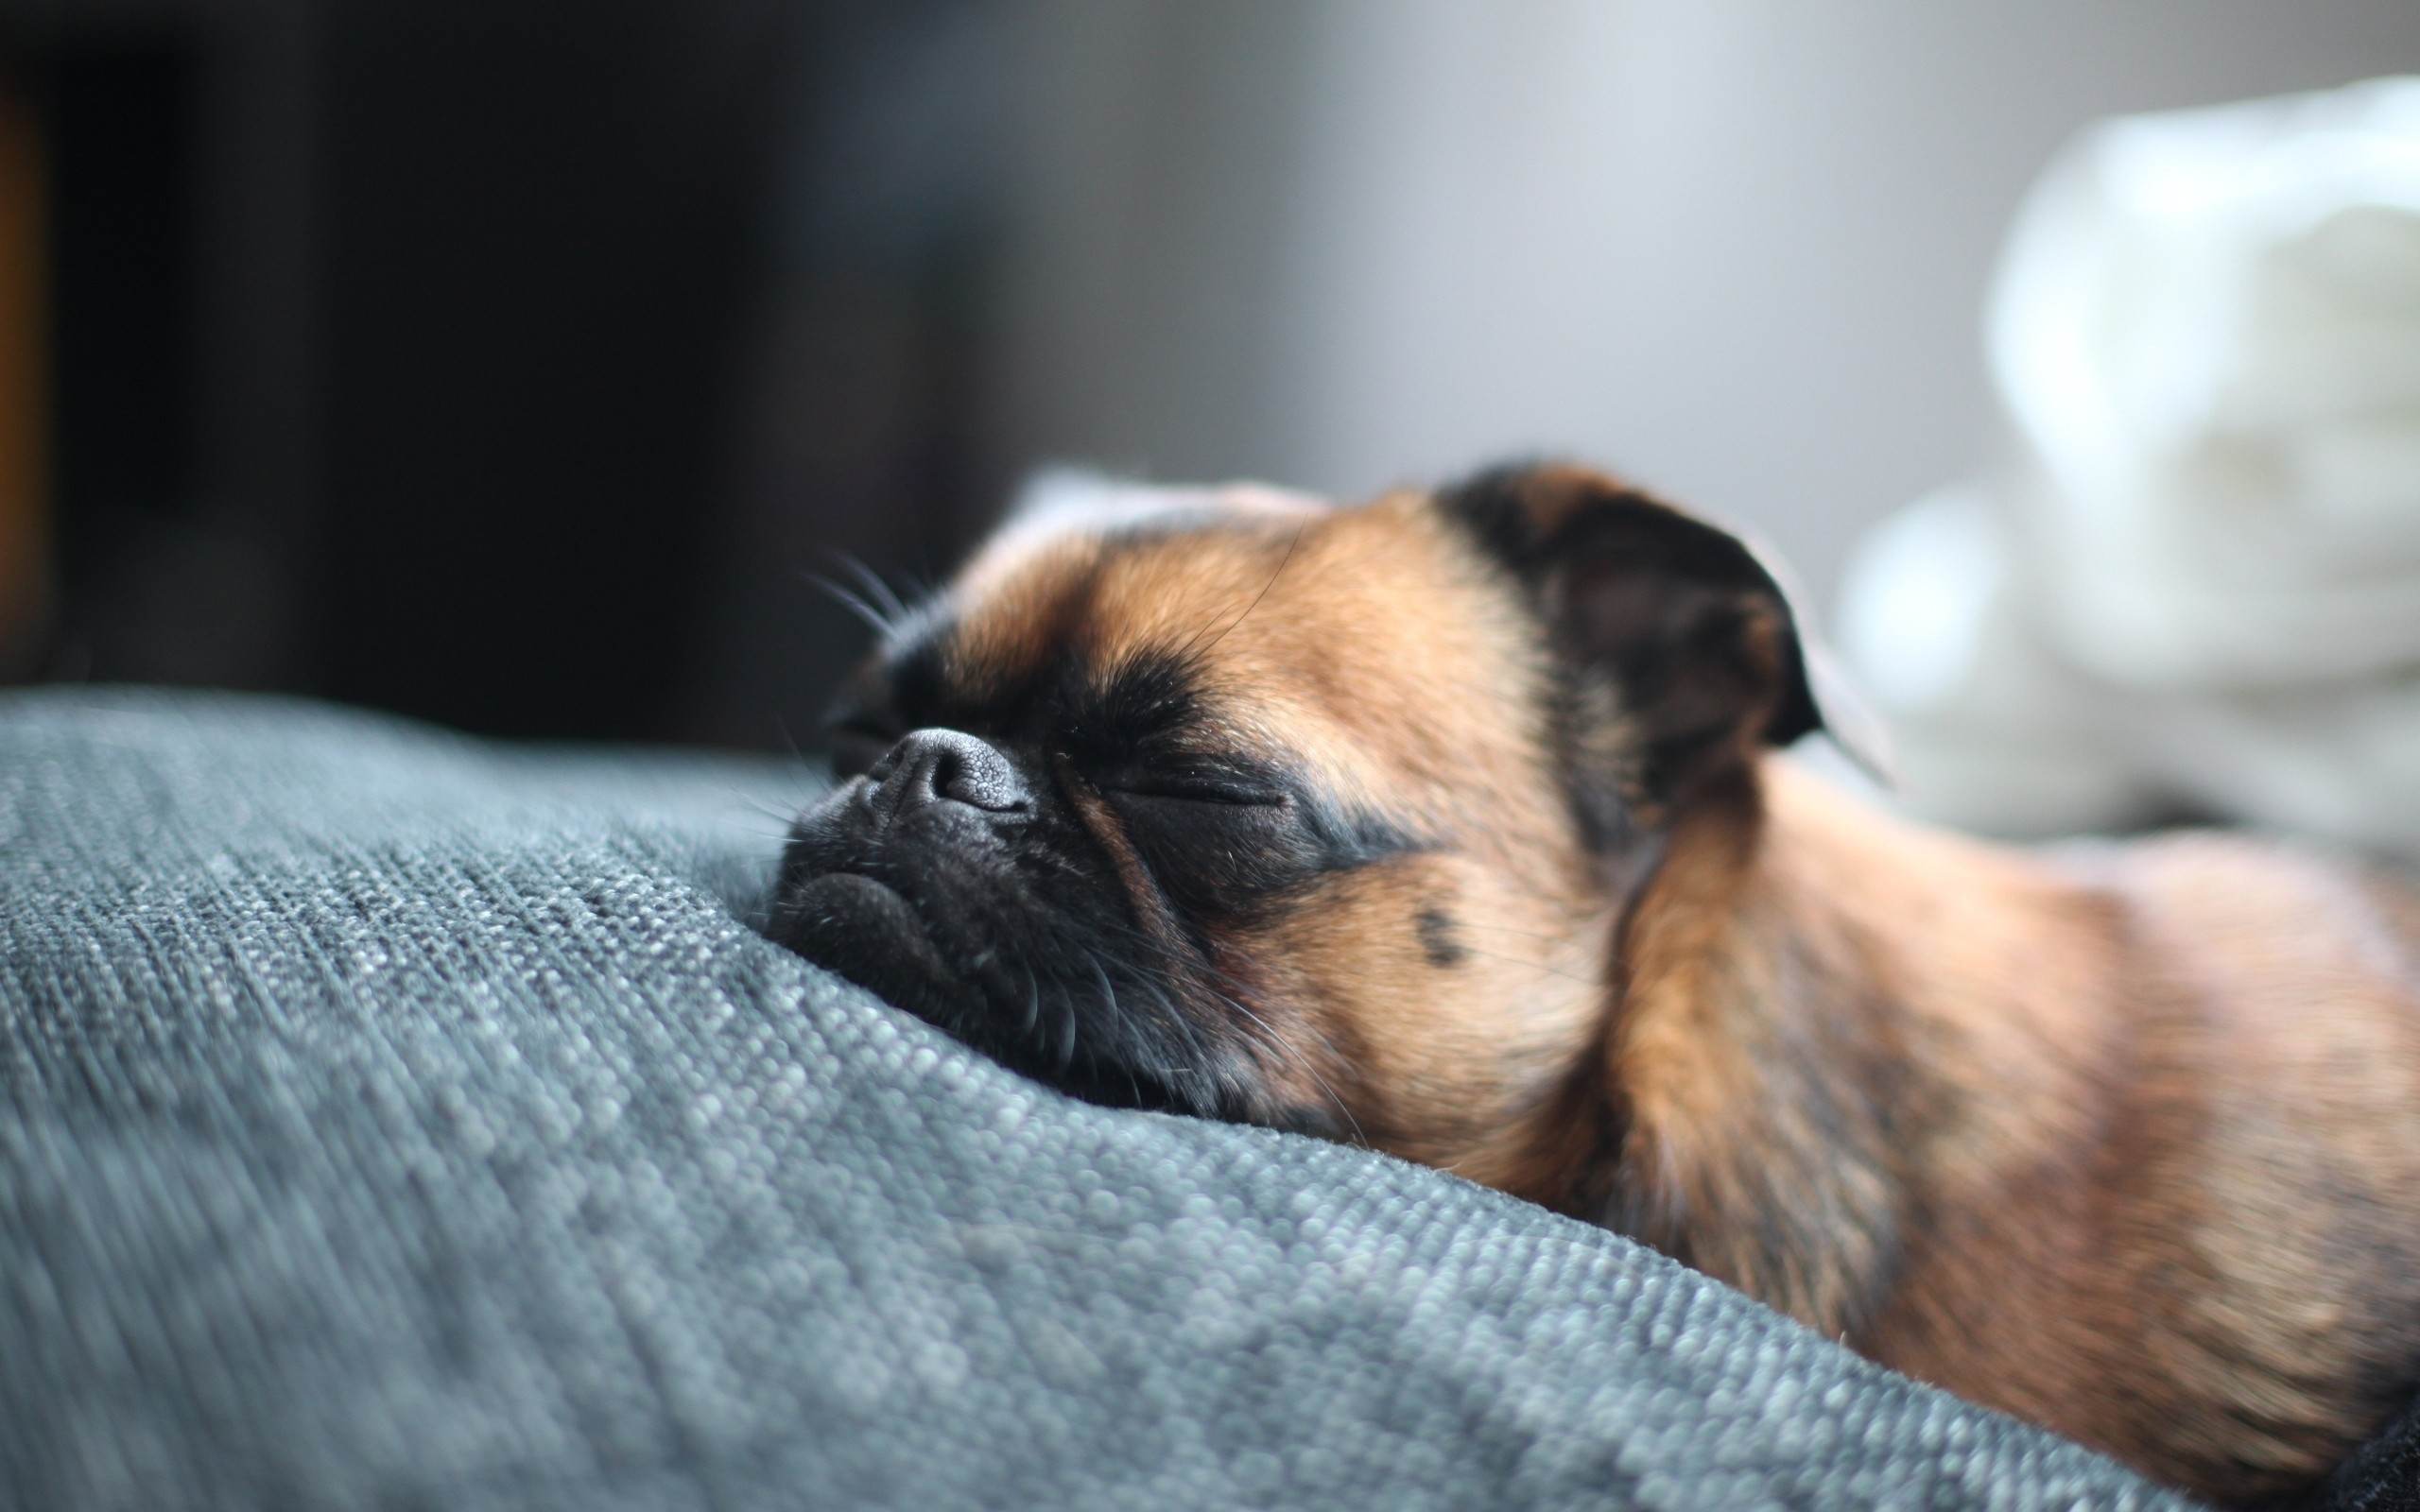 2560x1600 ... Next: Brown Pug Sleeping. Category: Animals wallpapers